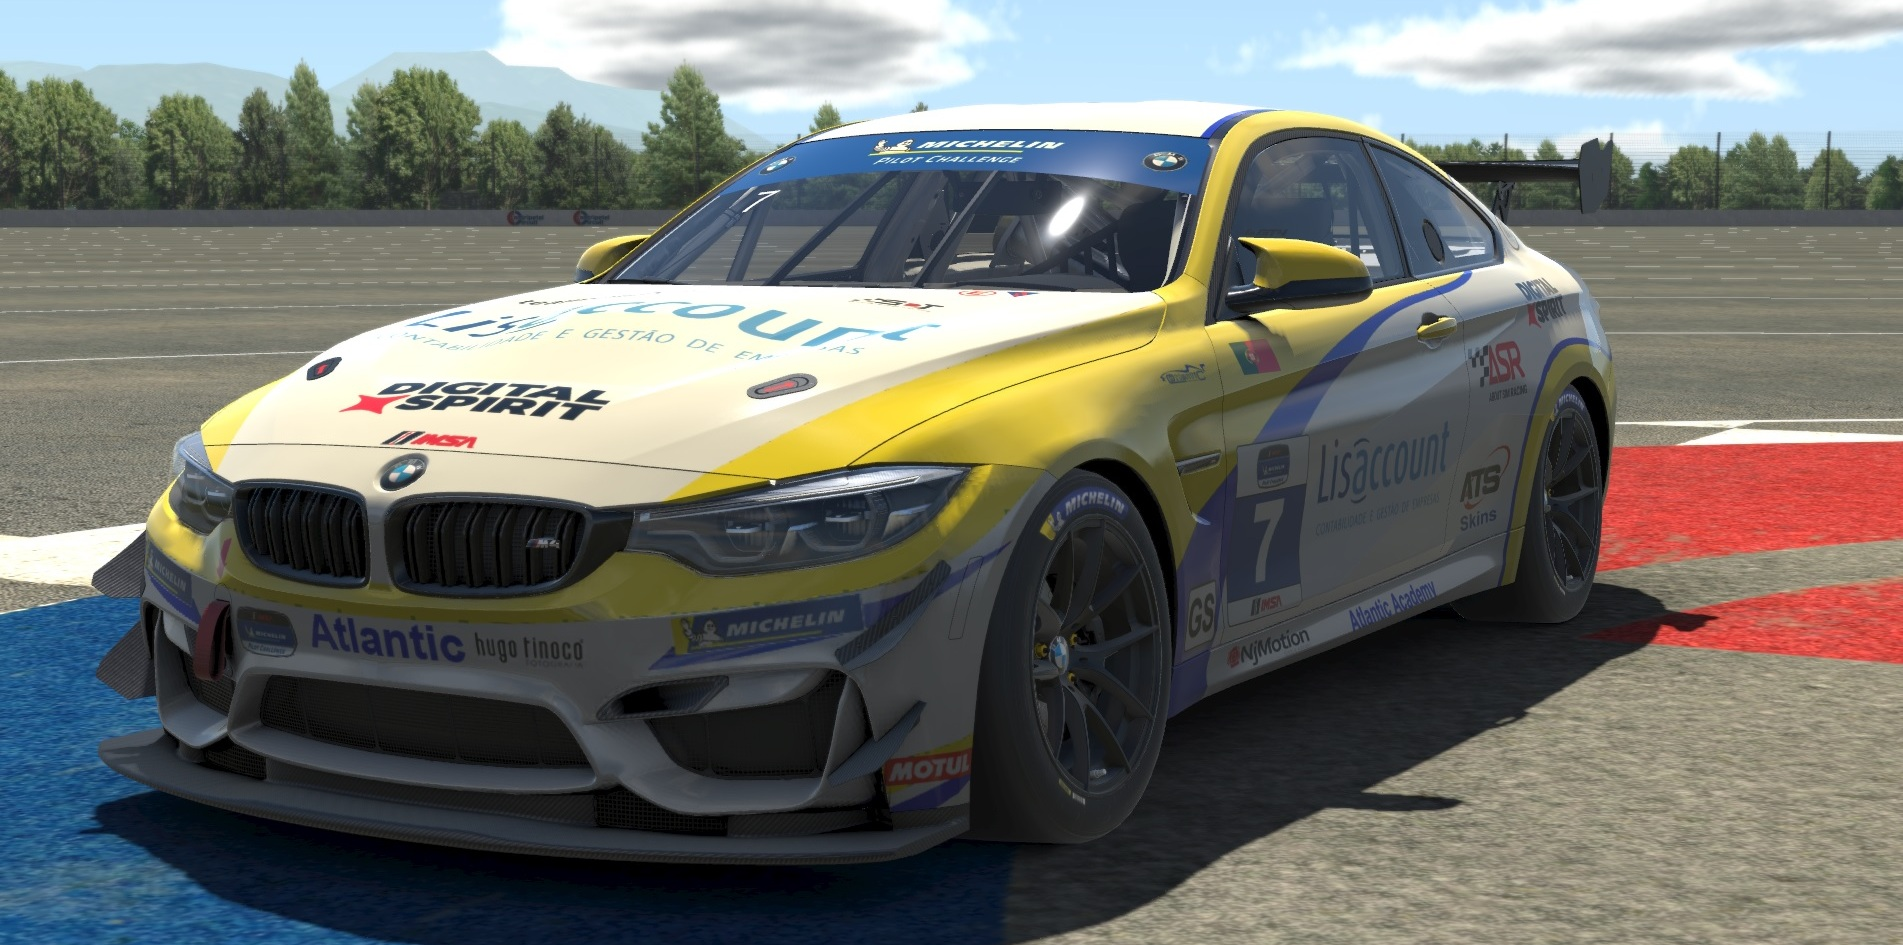 Atlantic Academy presents the new BMW M4 GT4 for iRacing